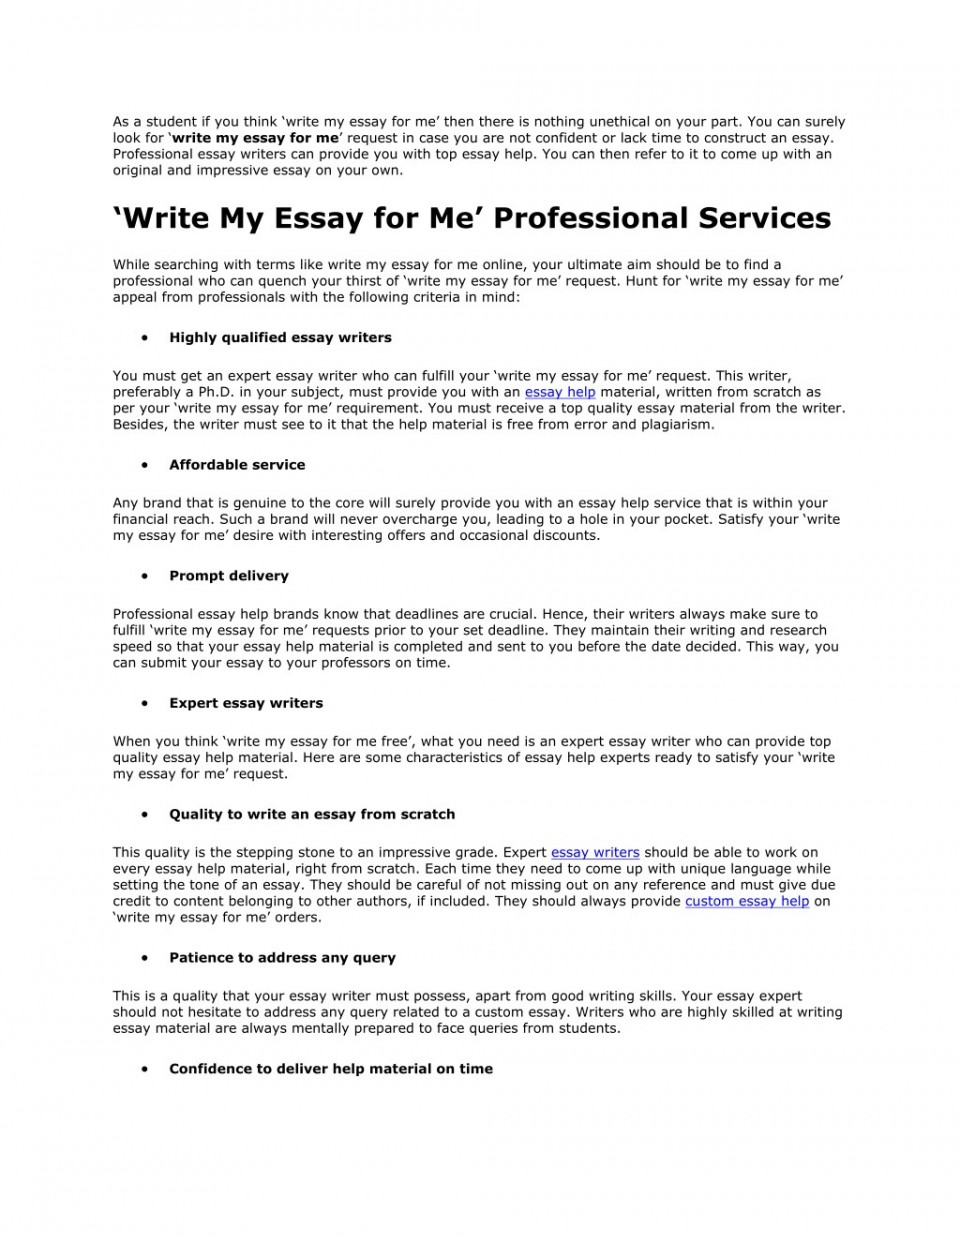 006 Essay Example Write For Me As Student If You Think My Amazing College Cheap Uk Discount Code 960